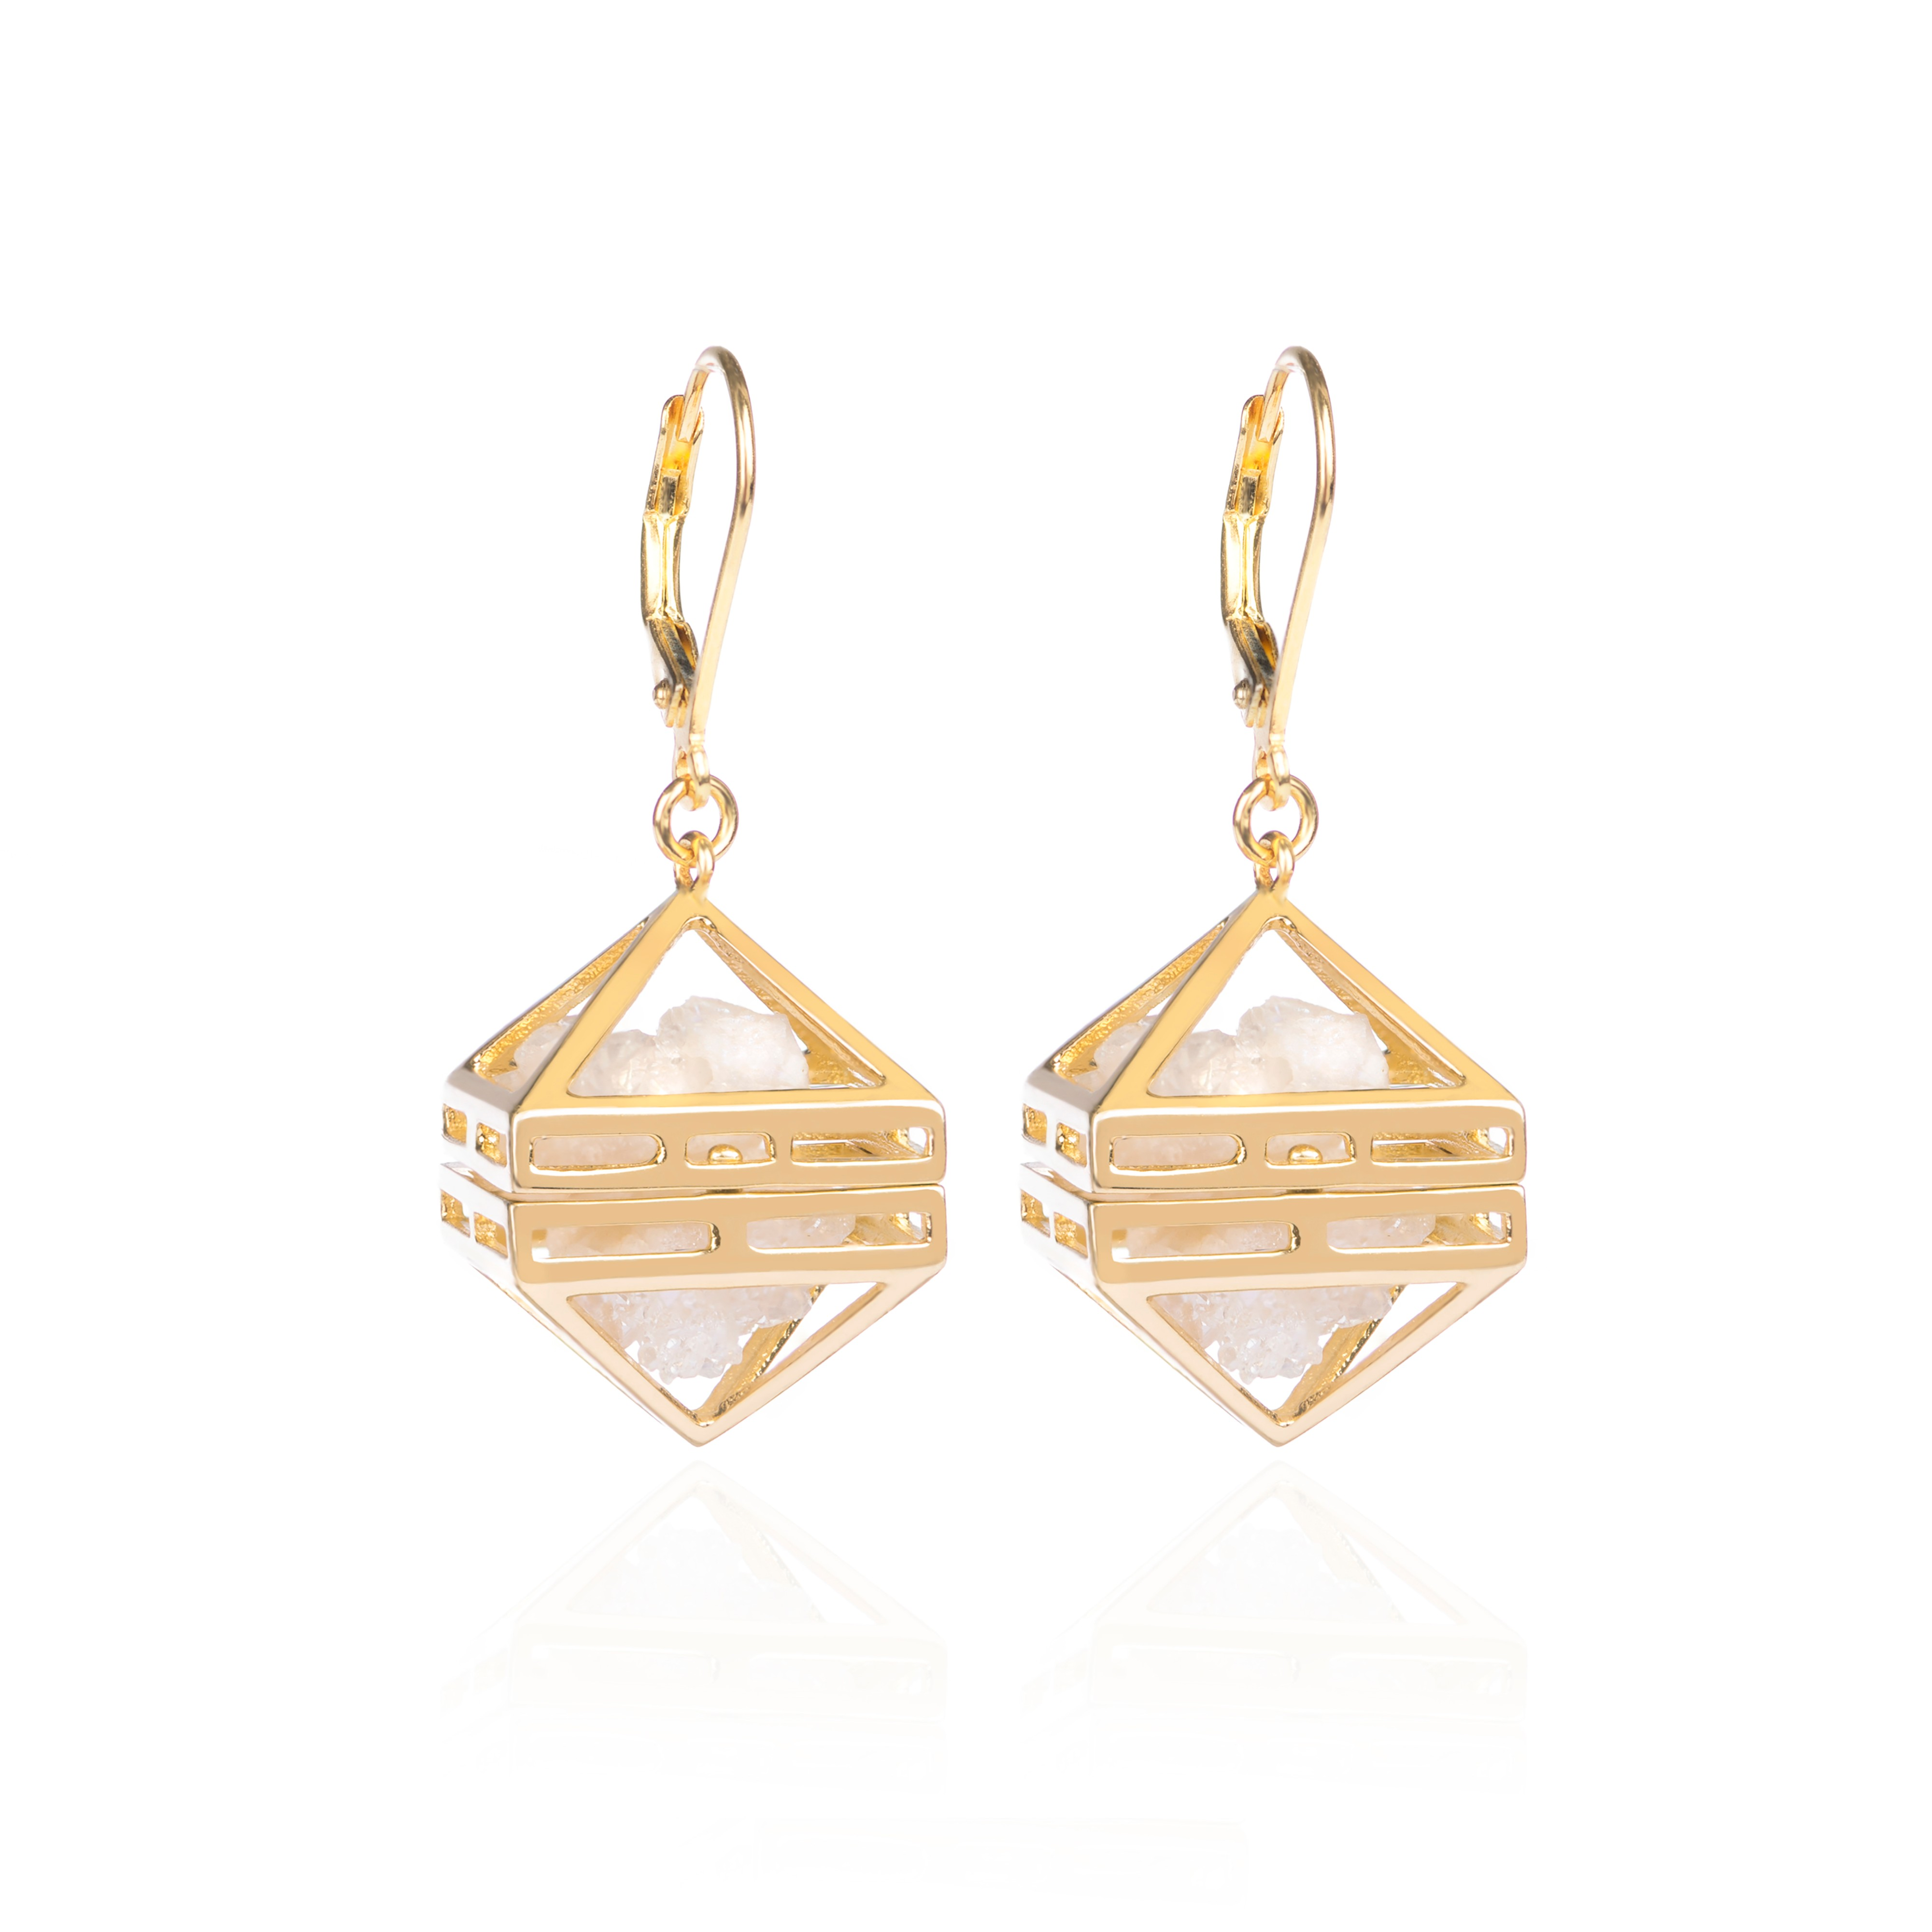 White Beauty Within Earrings, Gold by Sally Lane Jewellery on curated-crowd.com